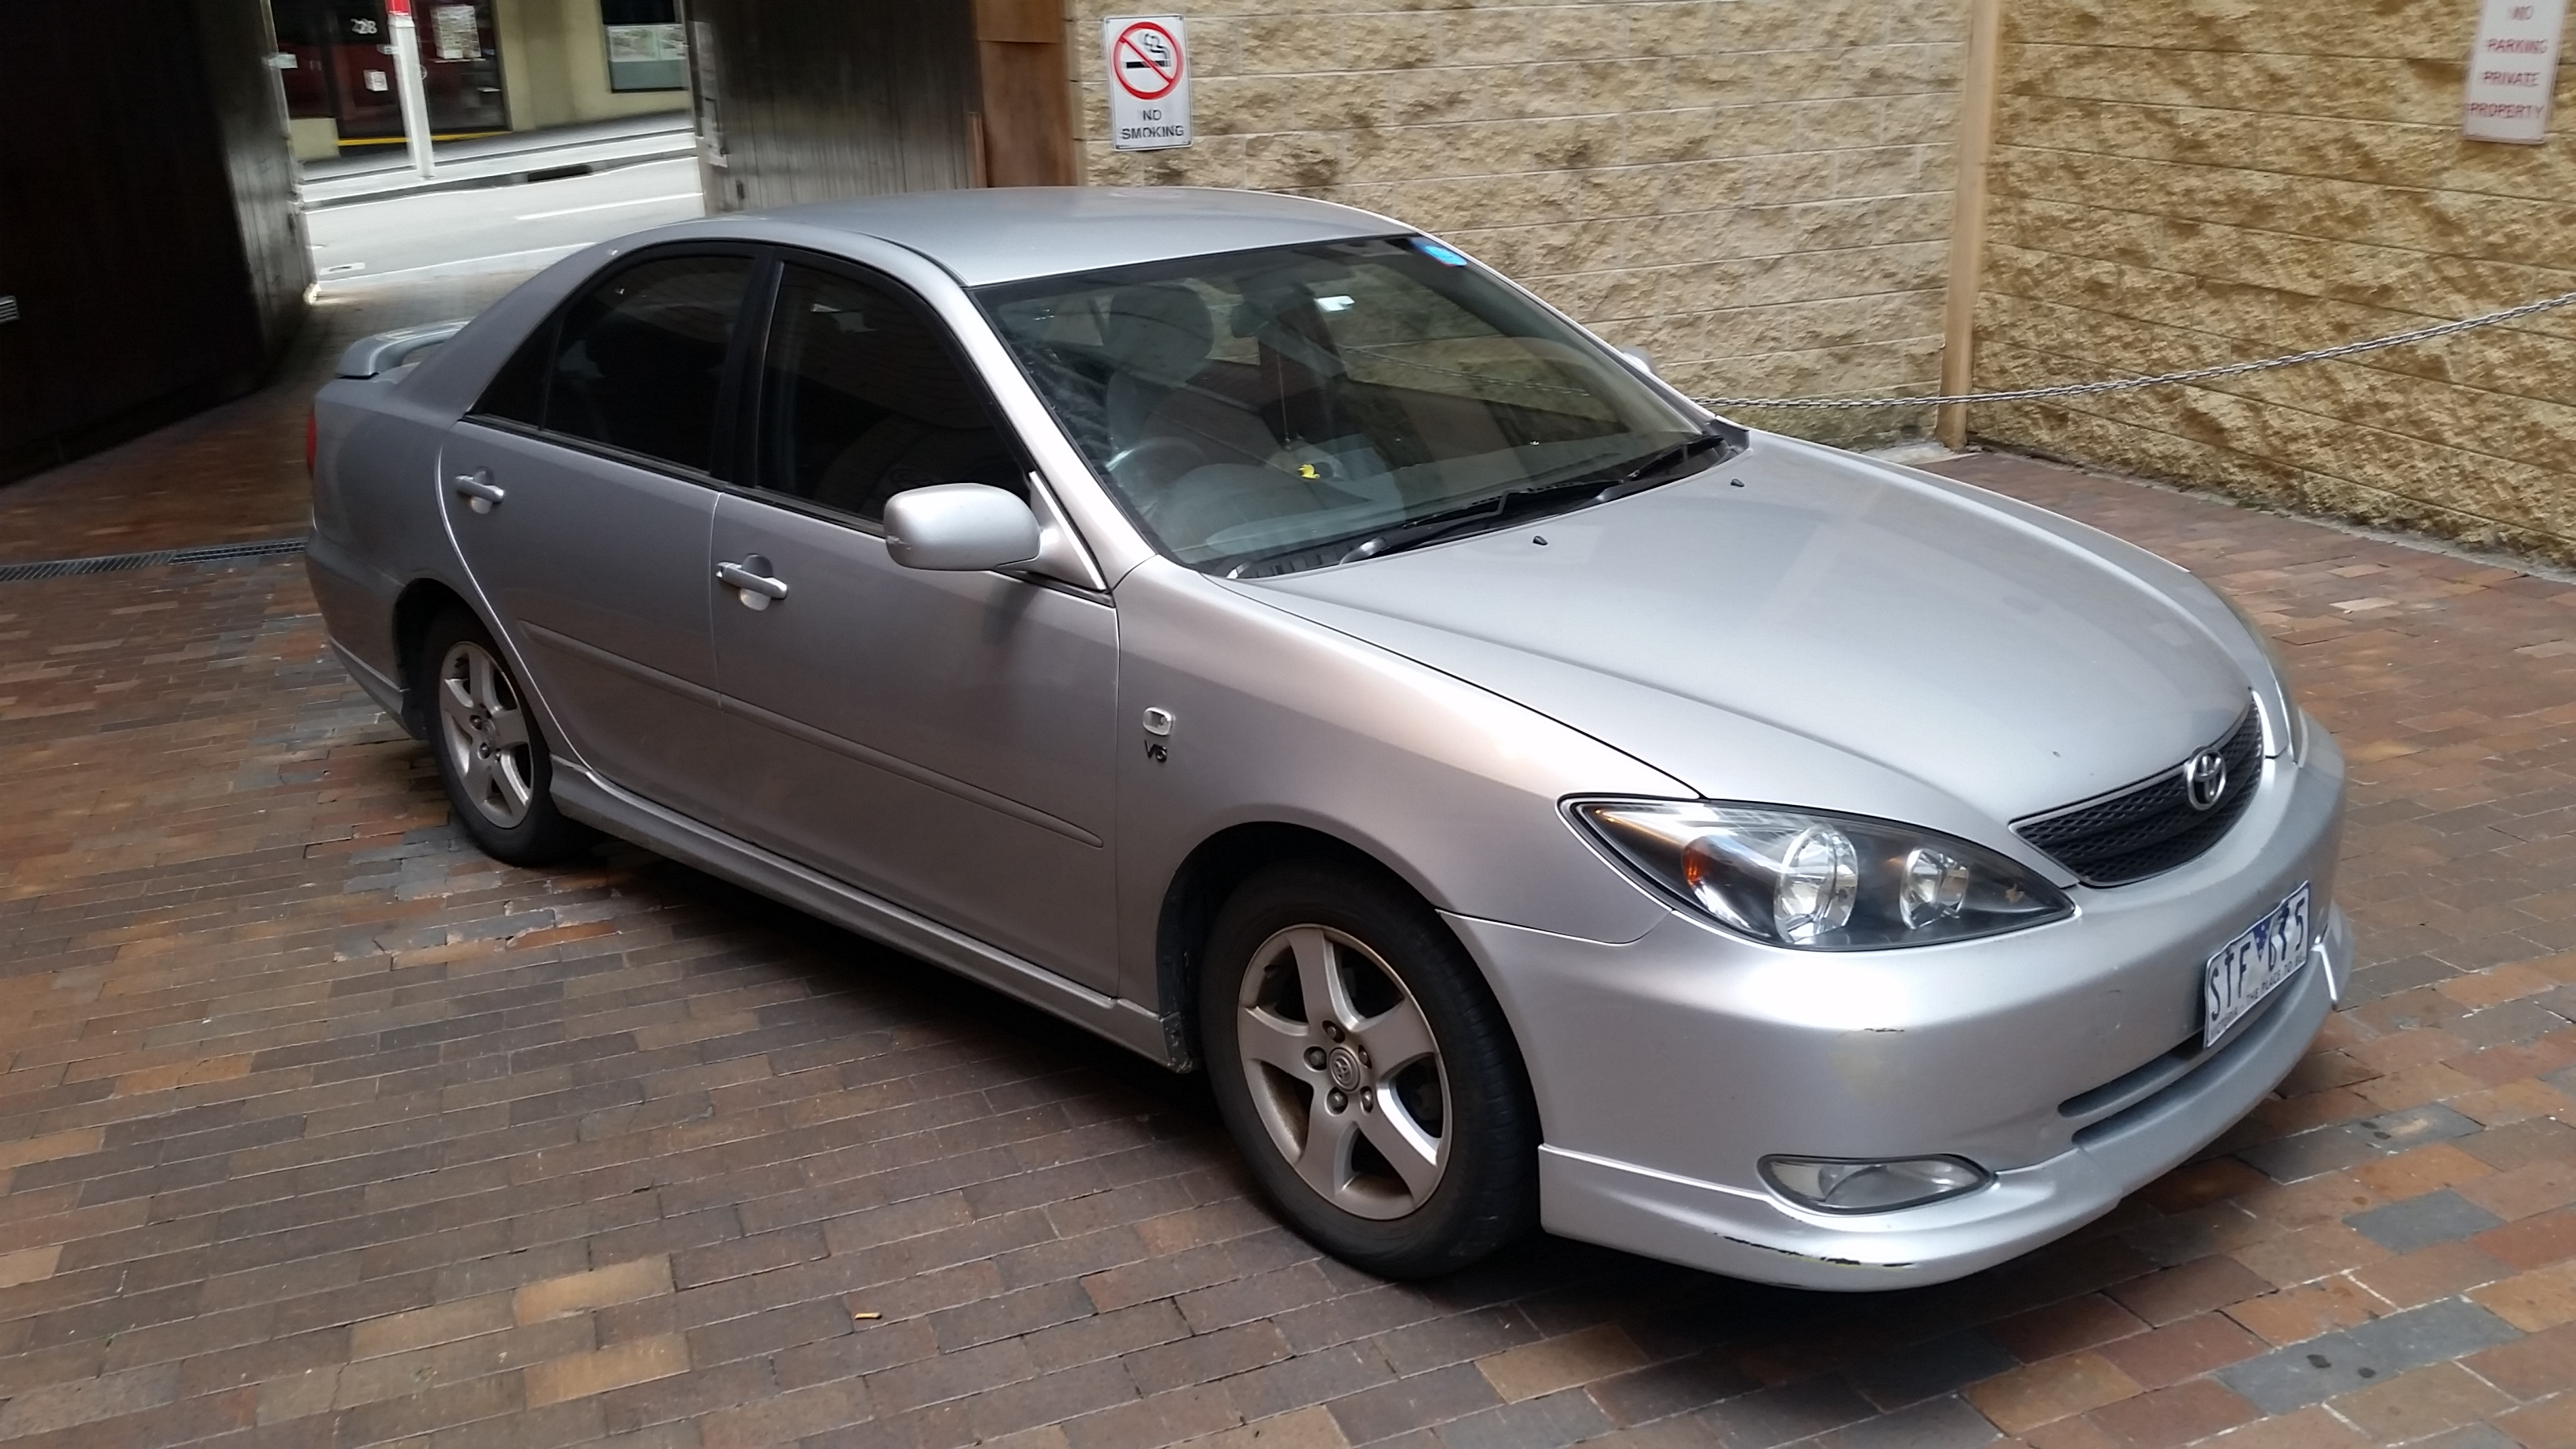 Picture of Chen's 2006 Toyota Camry